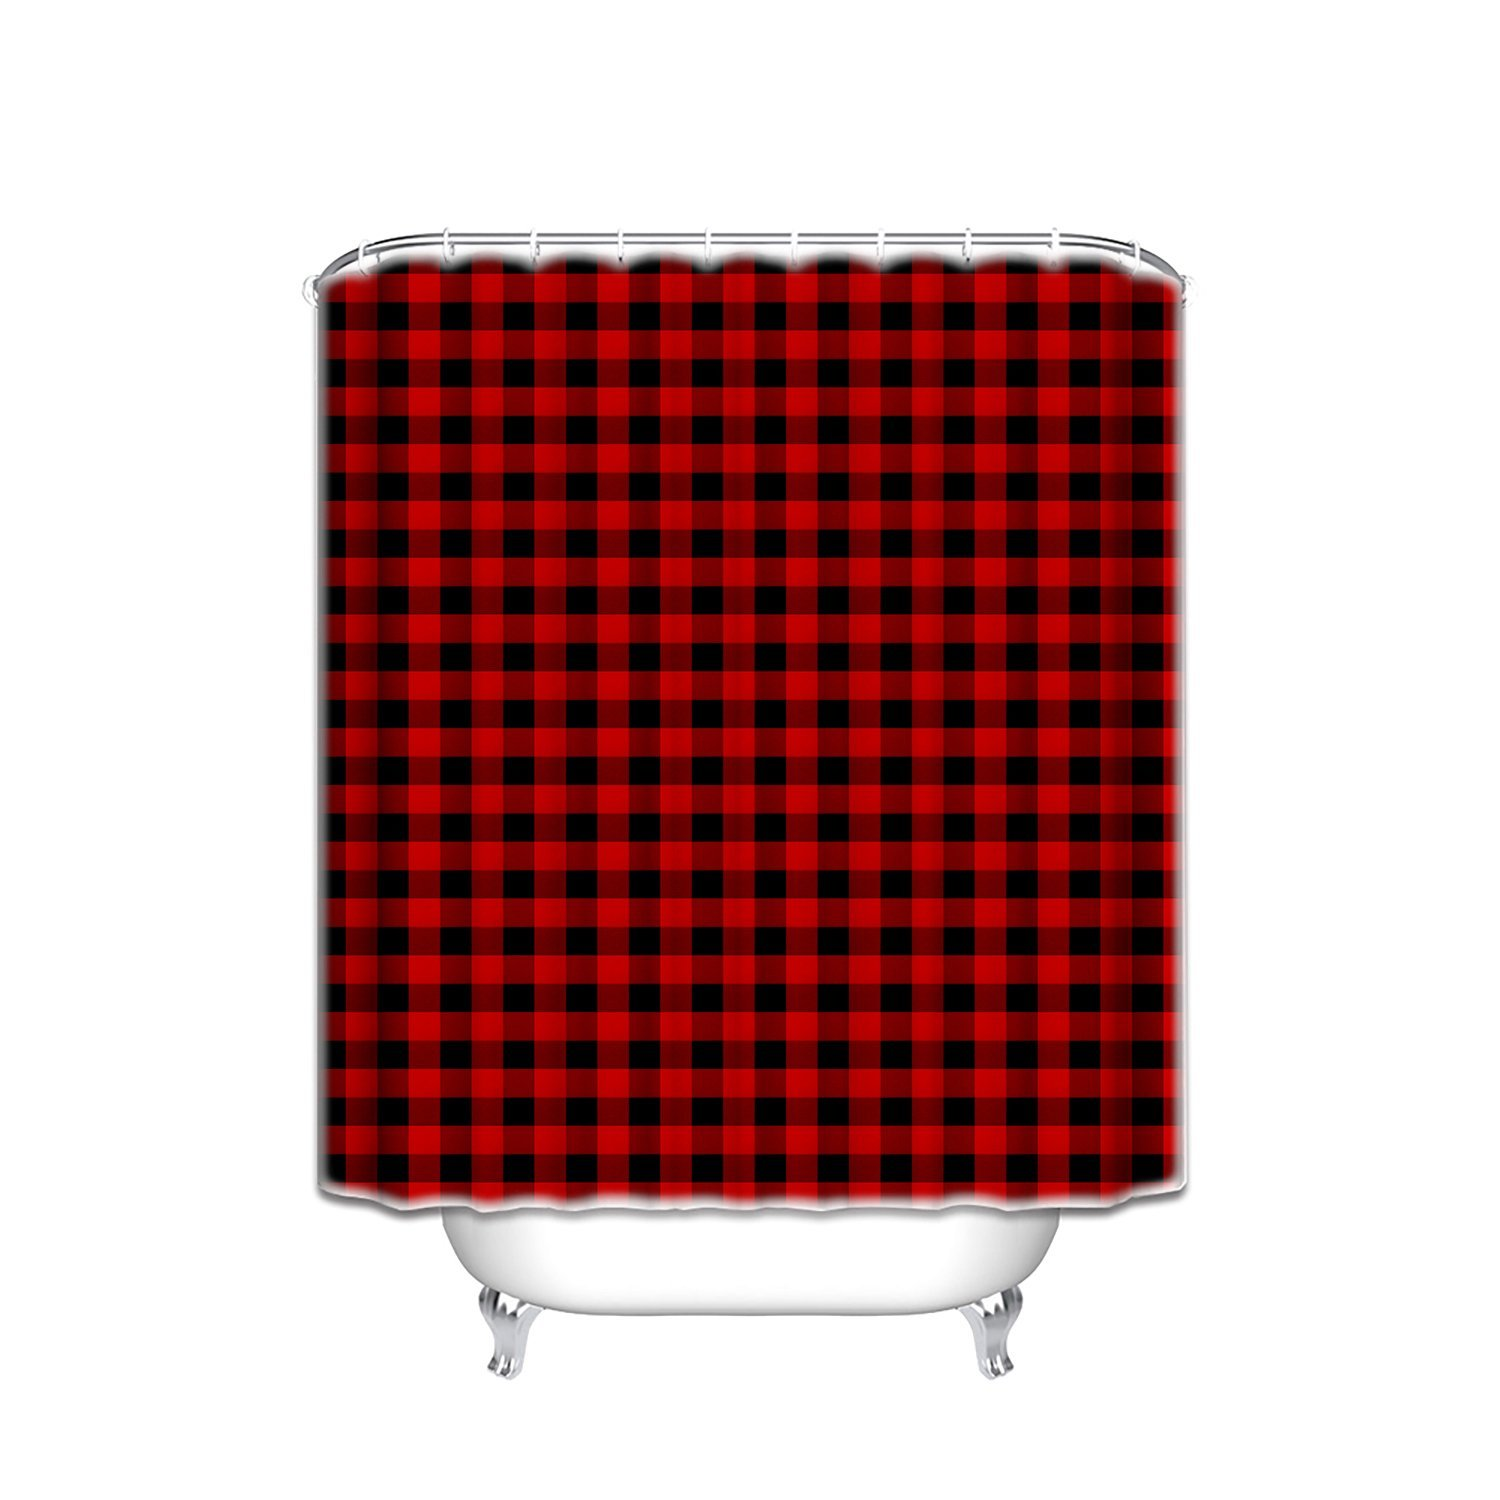 Us 16 63 36 Off Memory Home Customize Waterproof Rustic Red Black Buffalo Check Plaid Pattern Print Polyester Fabric Bathroom Shower Curtain In